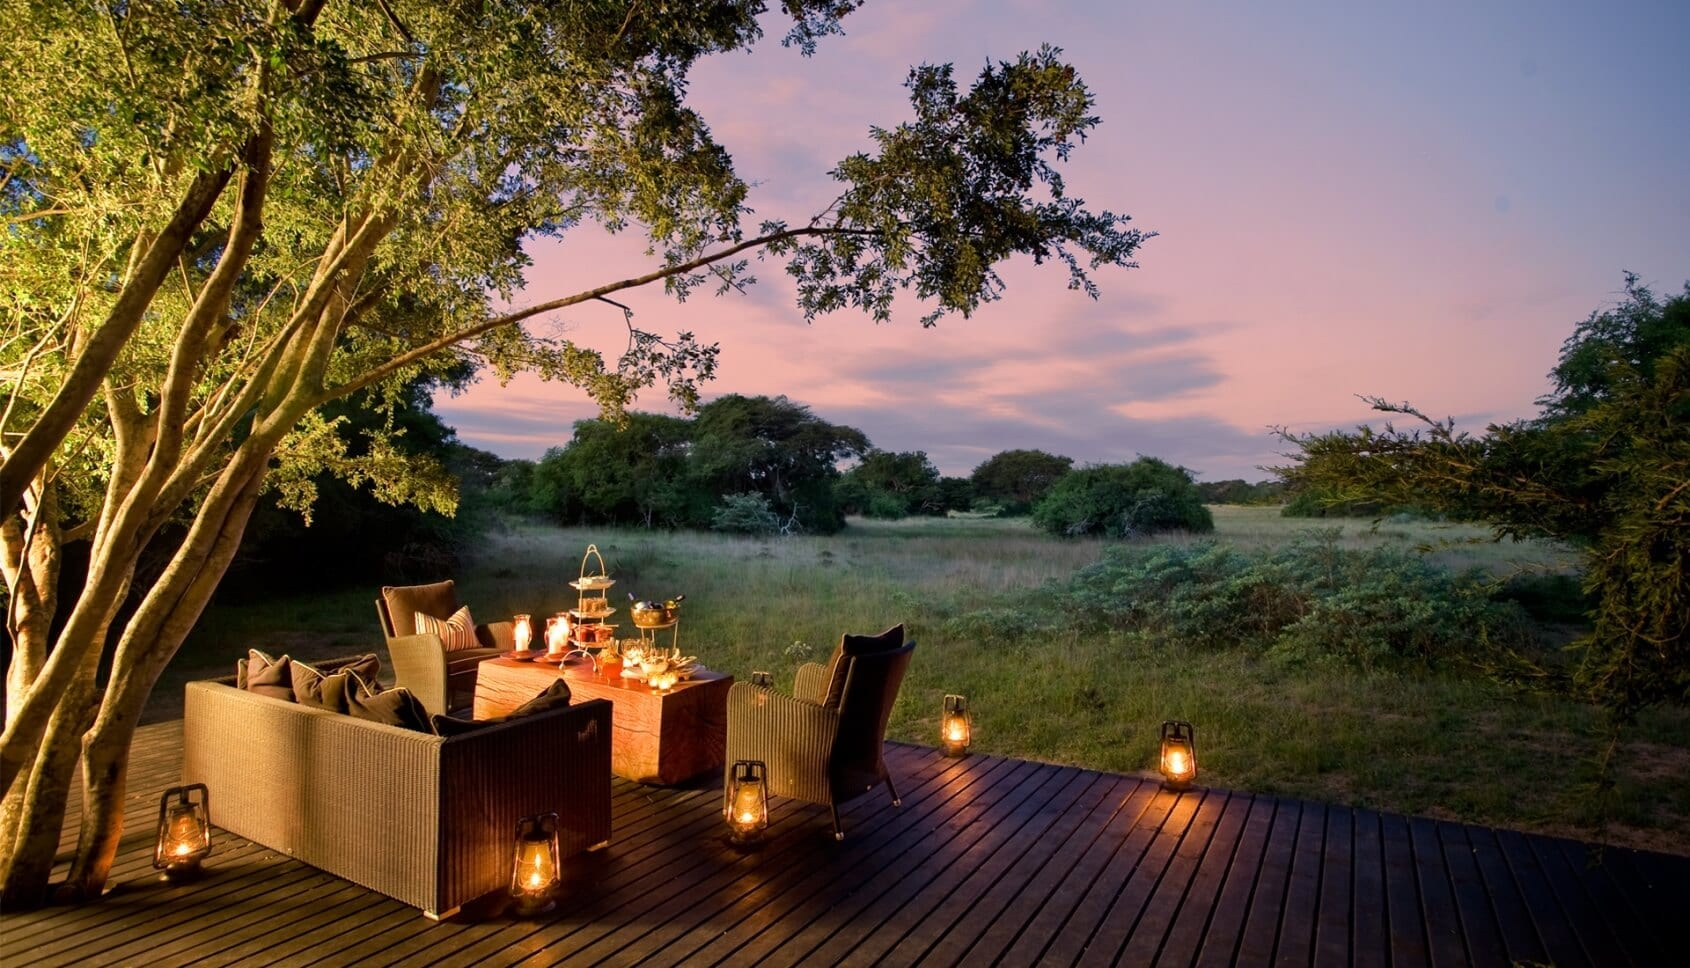 Evening on the deck at Phinda Forest Lodge